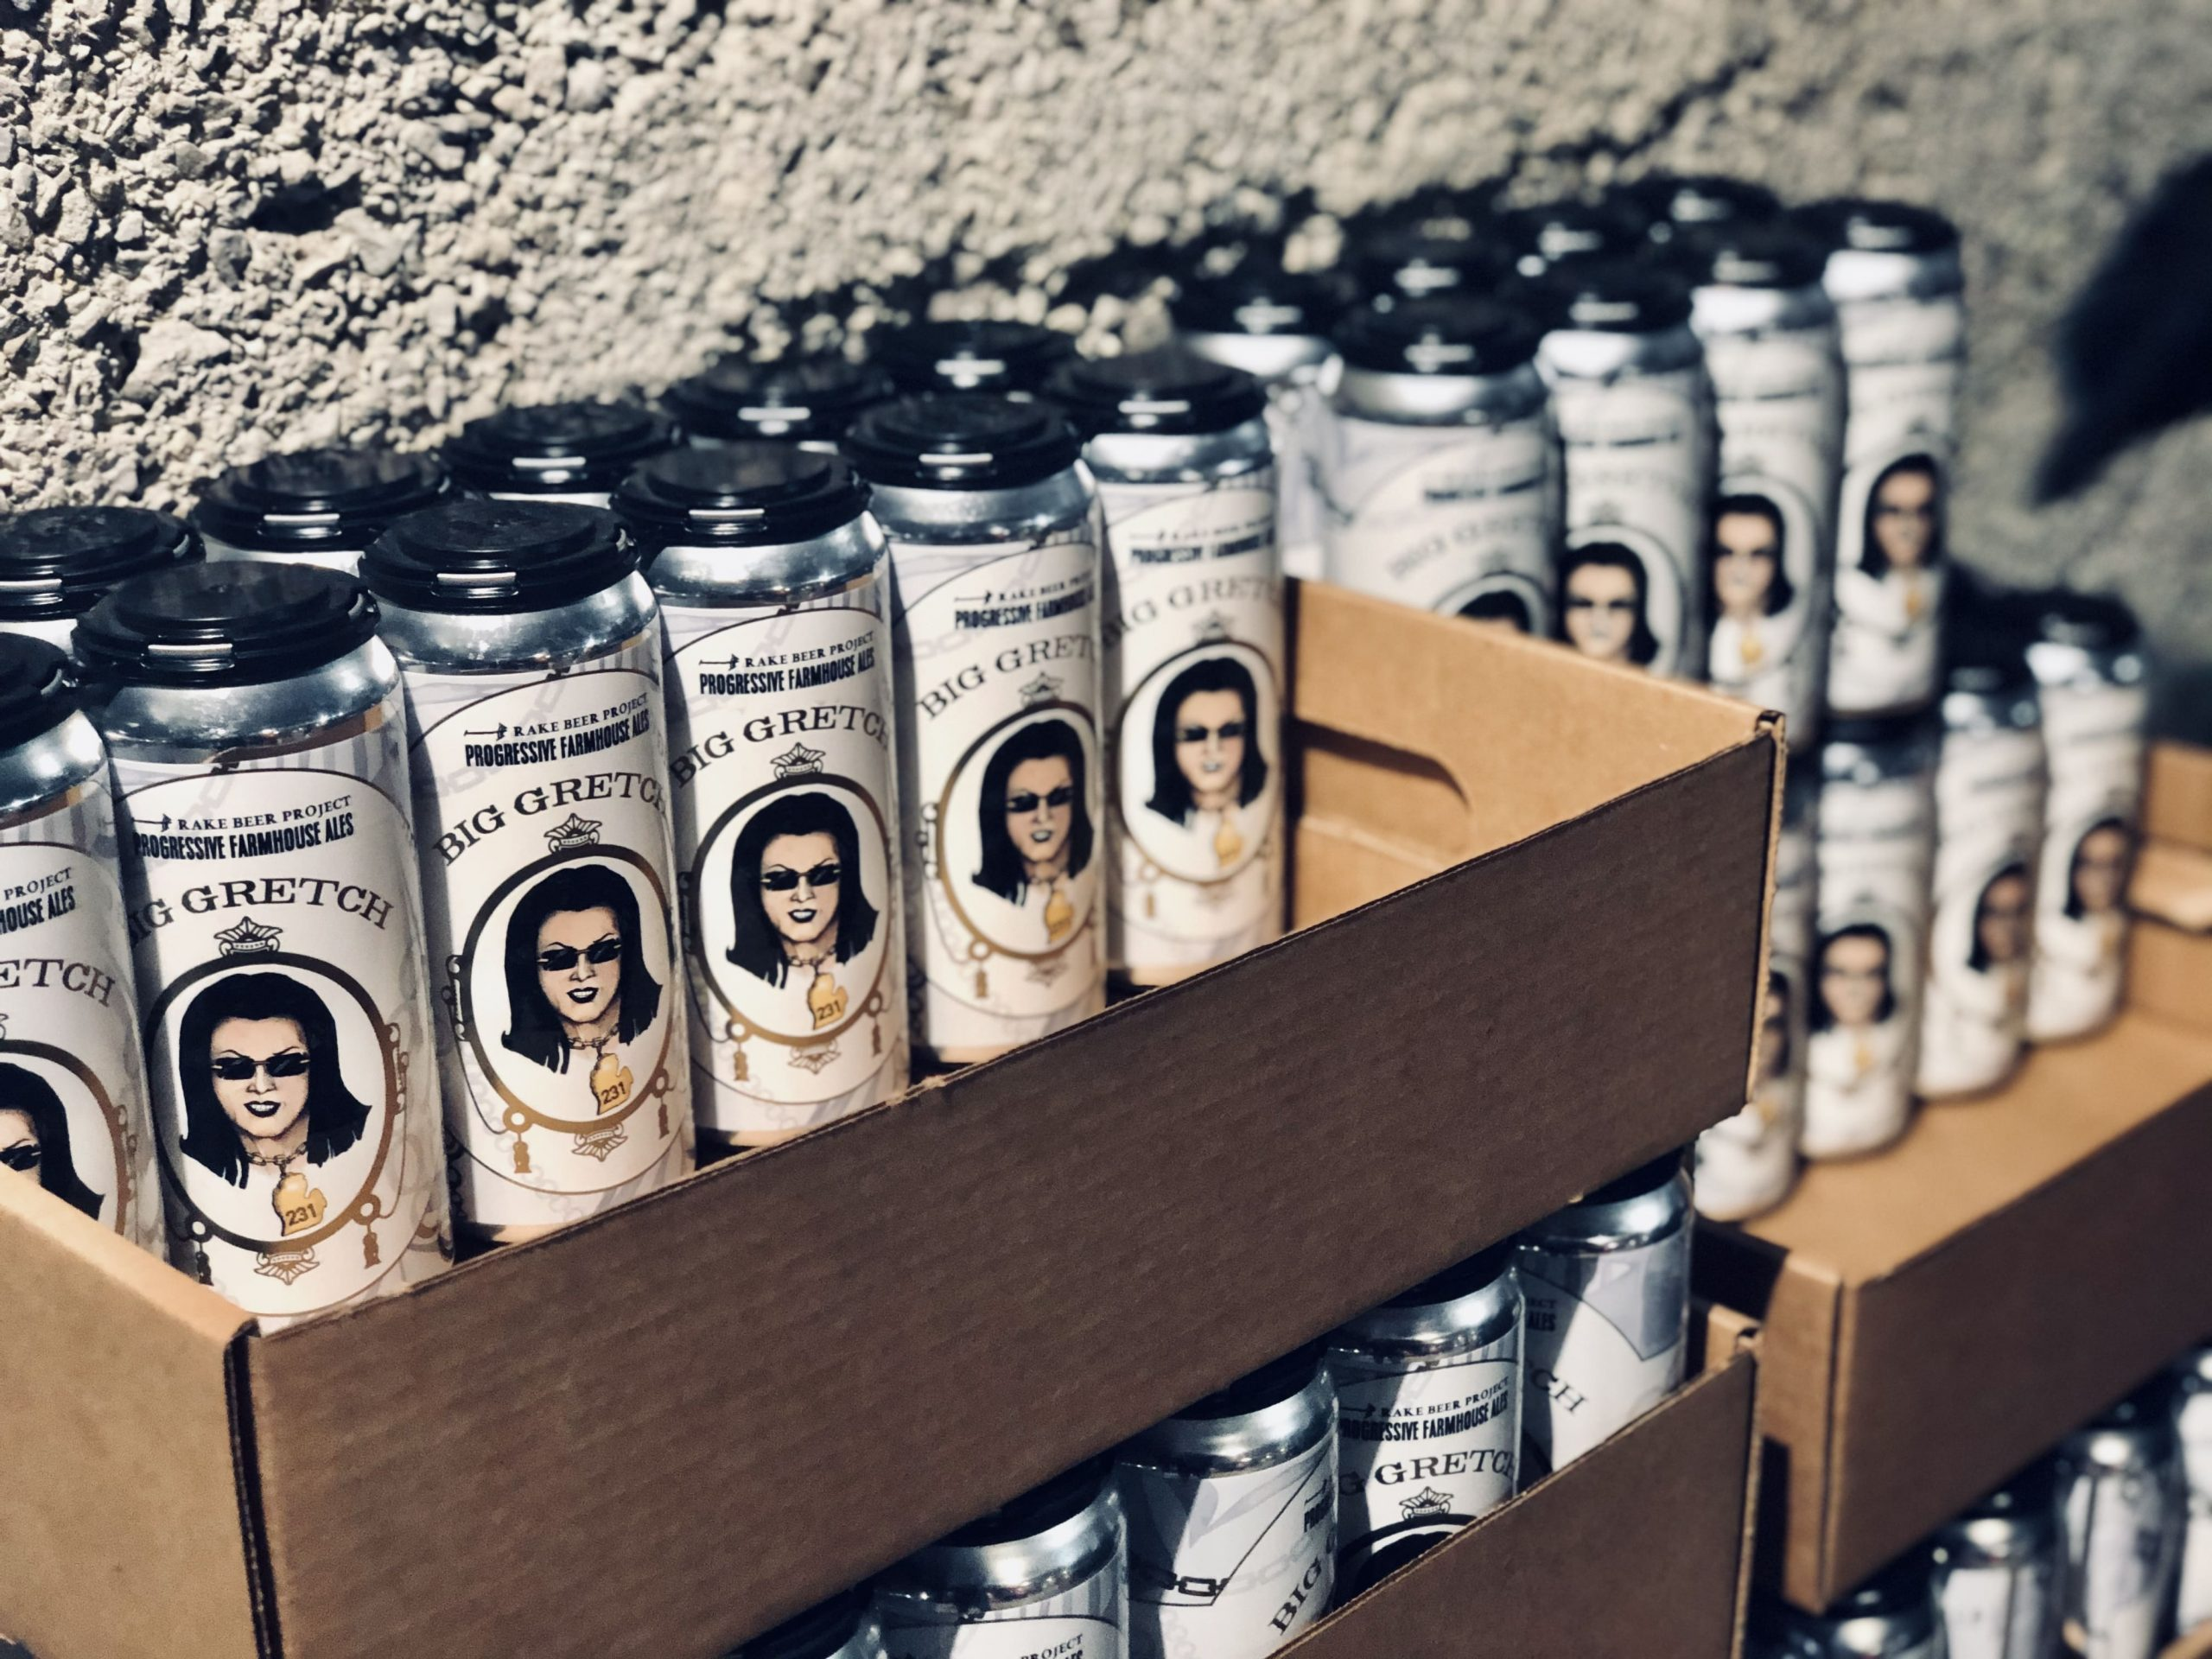 Rake Beer Project | Big Gretch cans